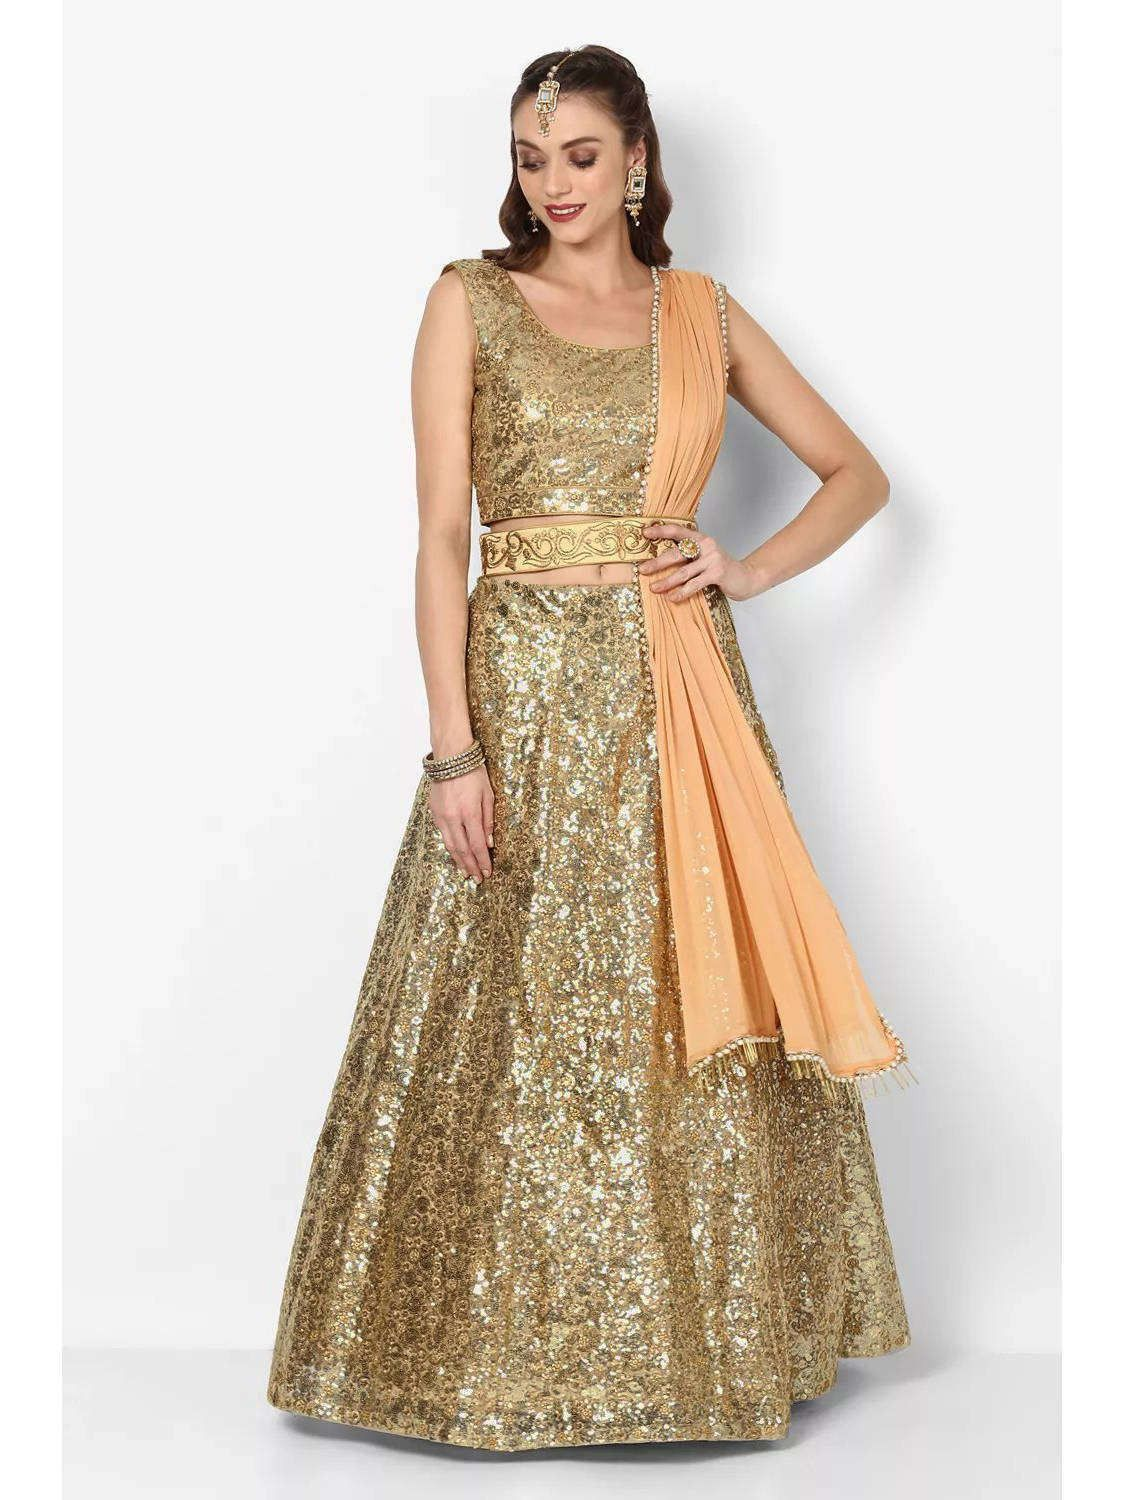 The Dazzling Gold Ethnic Lehenga Choli